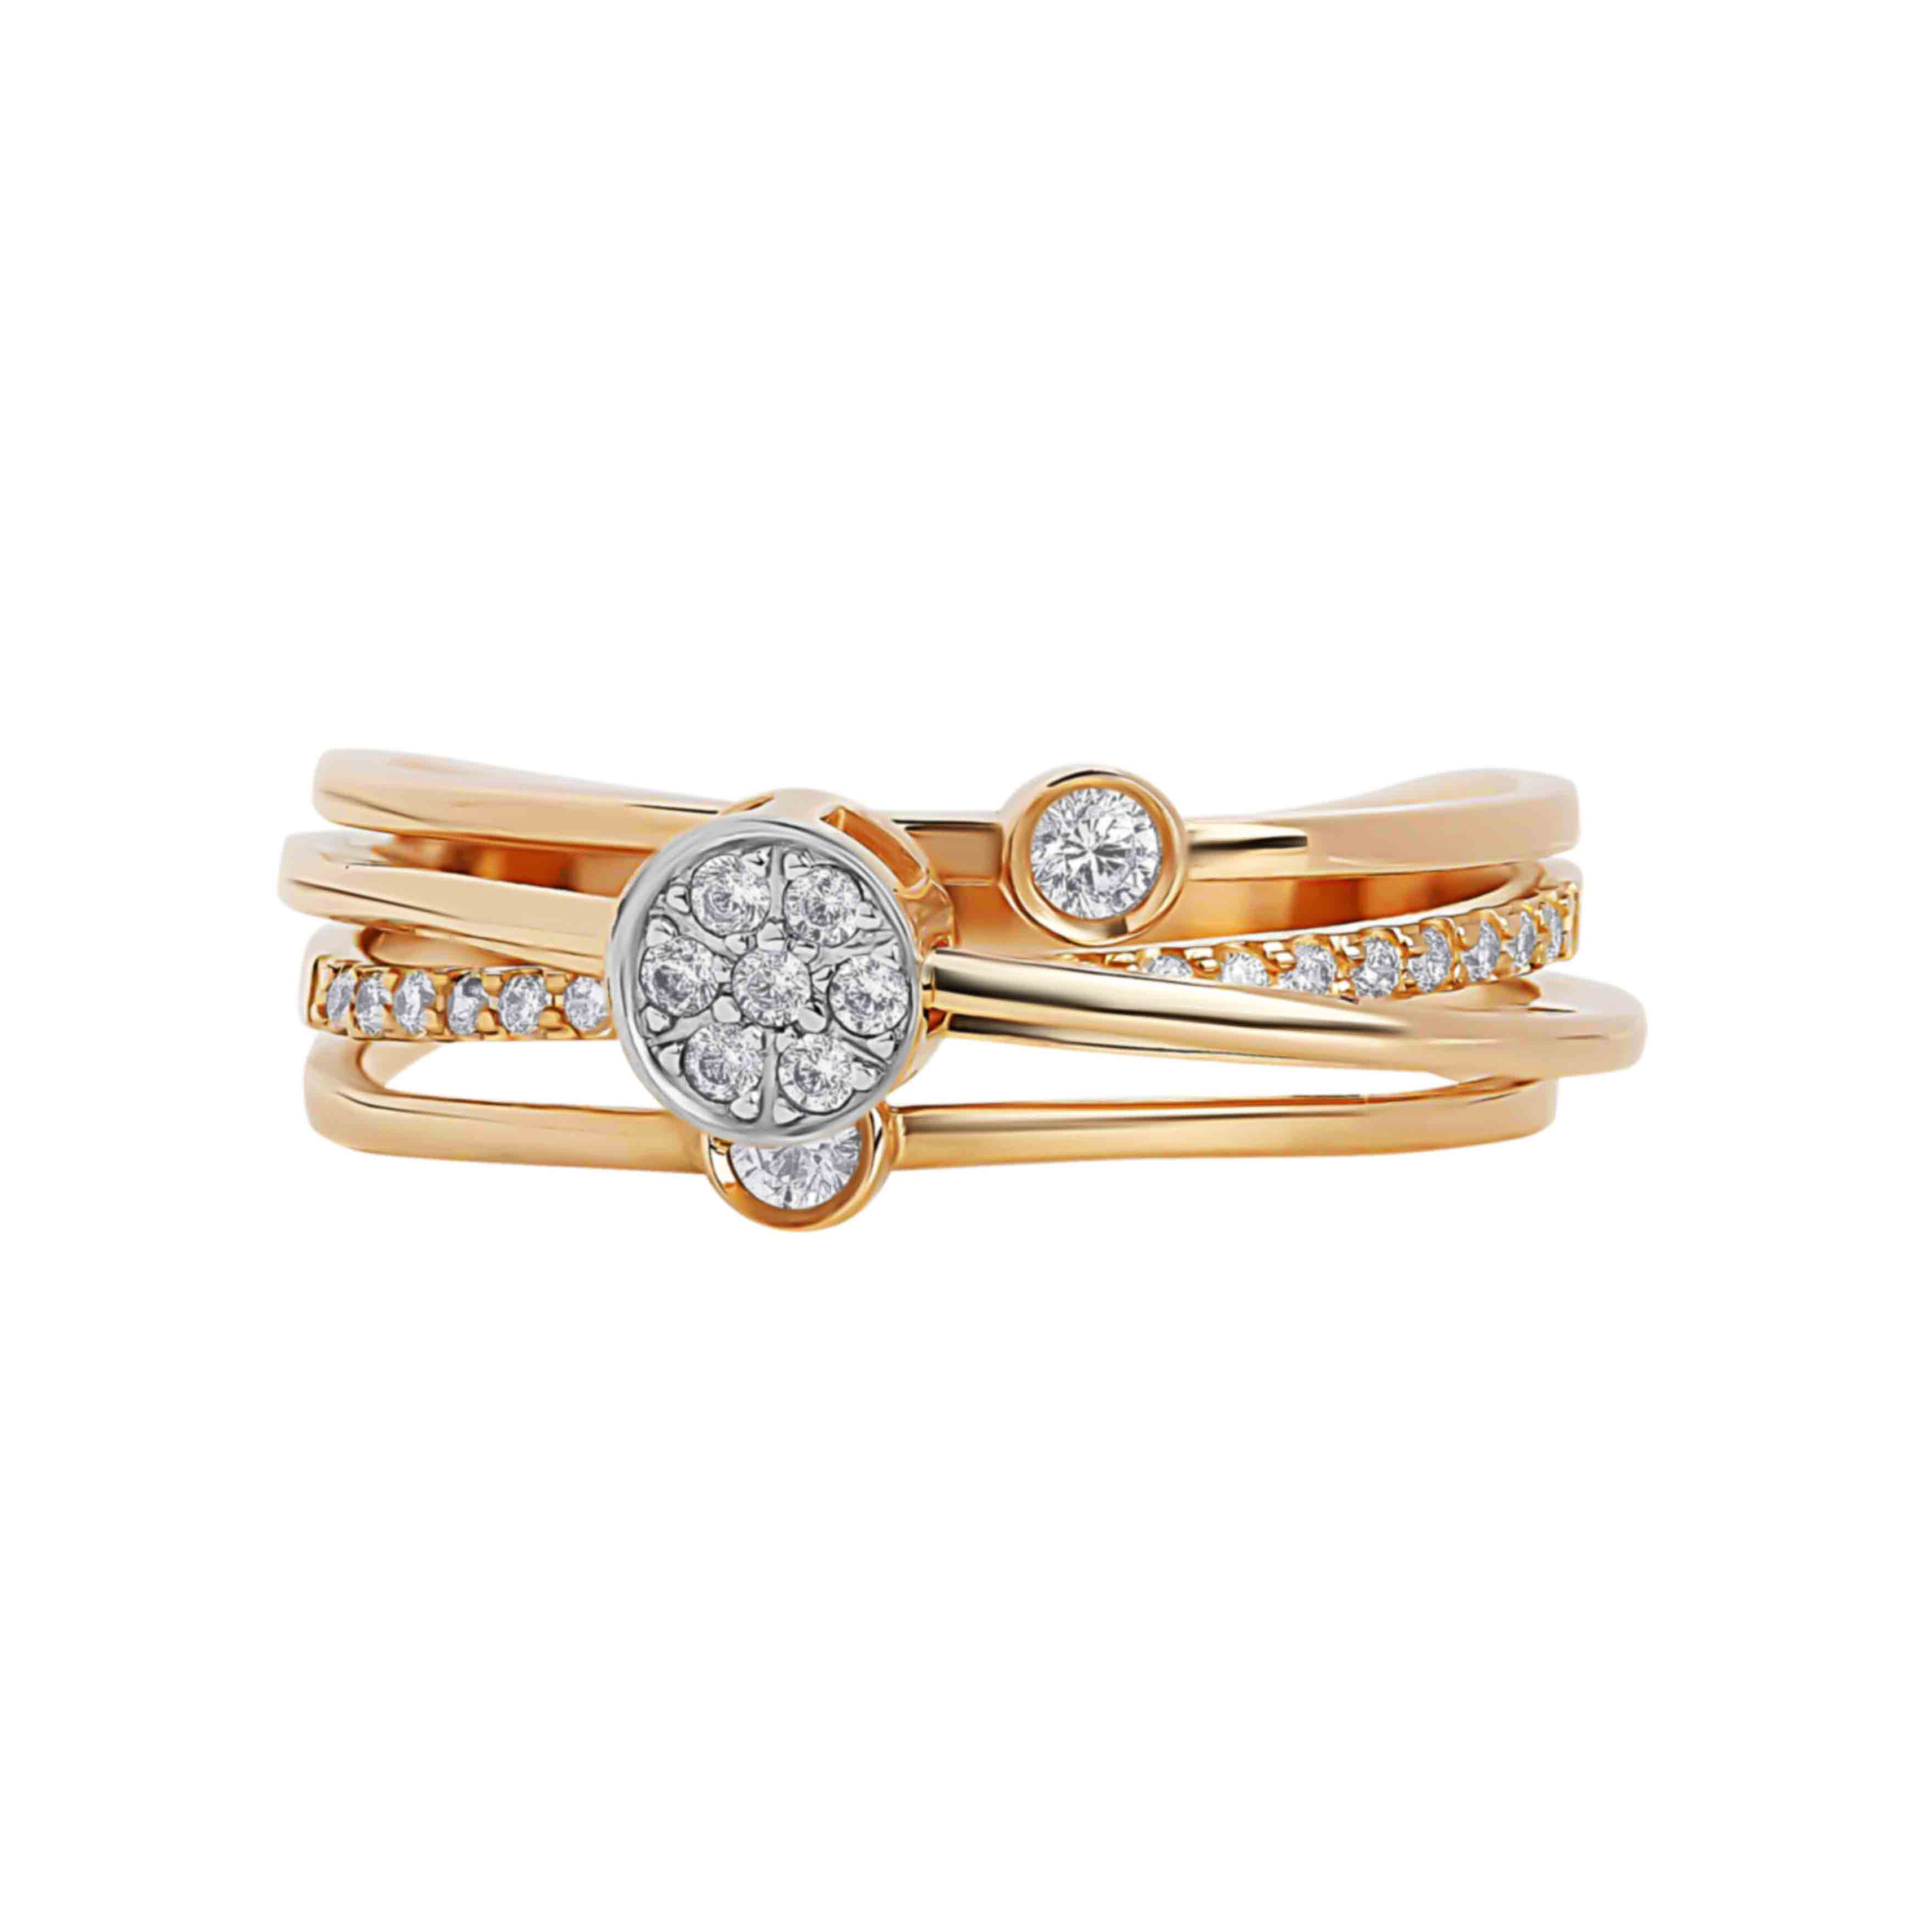 Movable CZ Rose Gold Ring. View 2